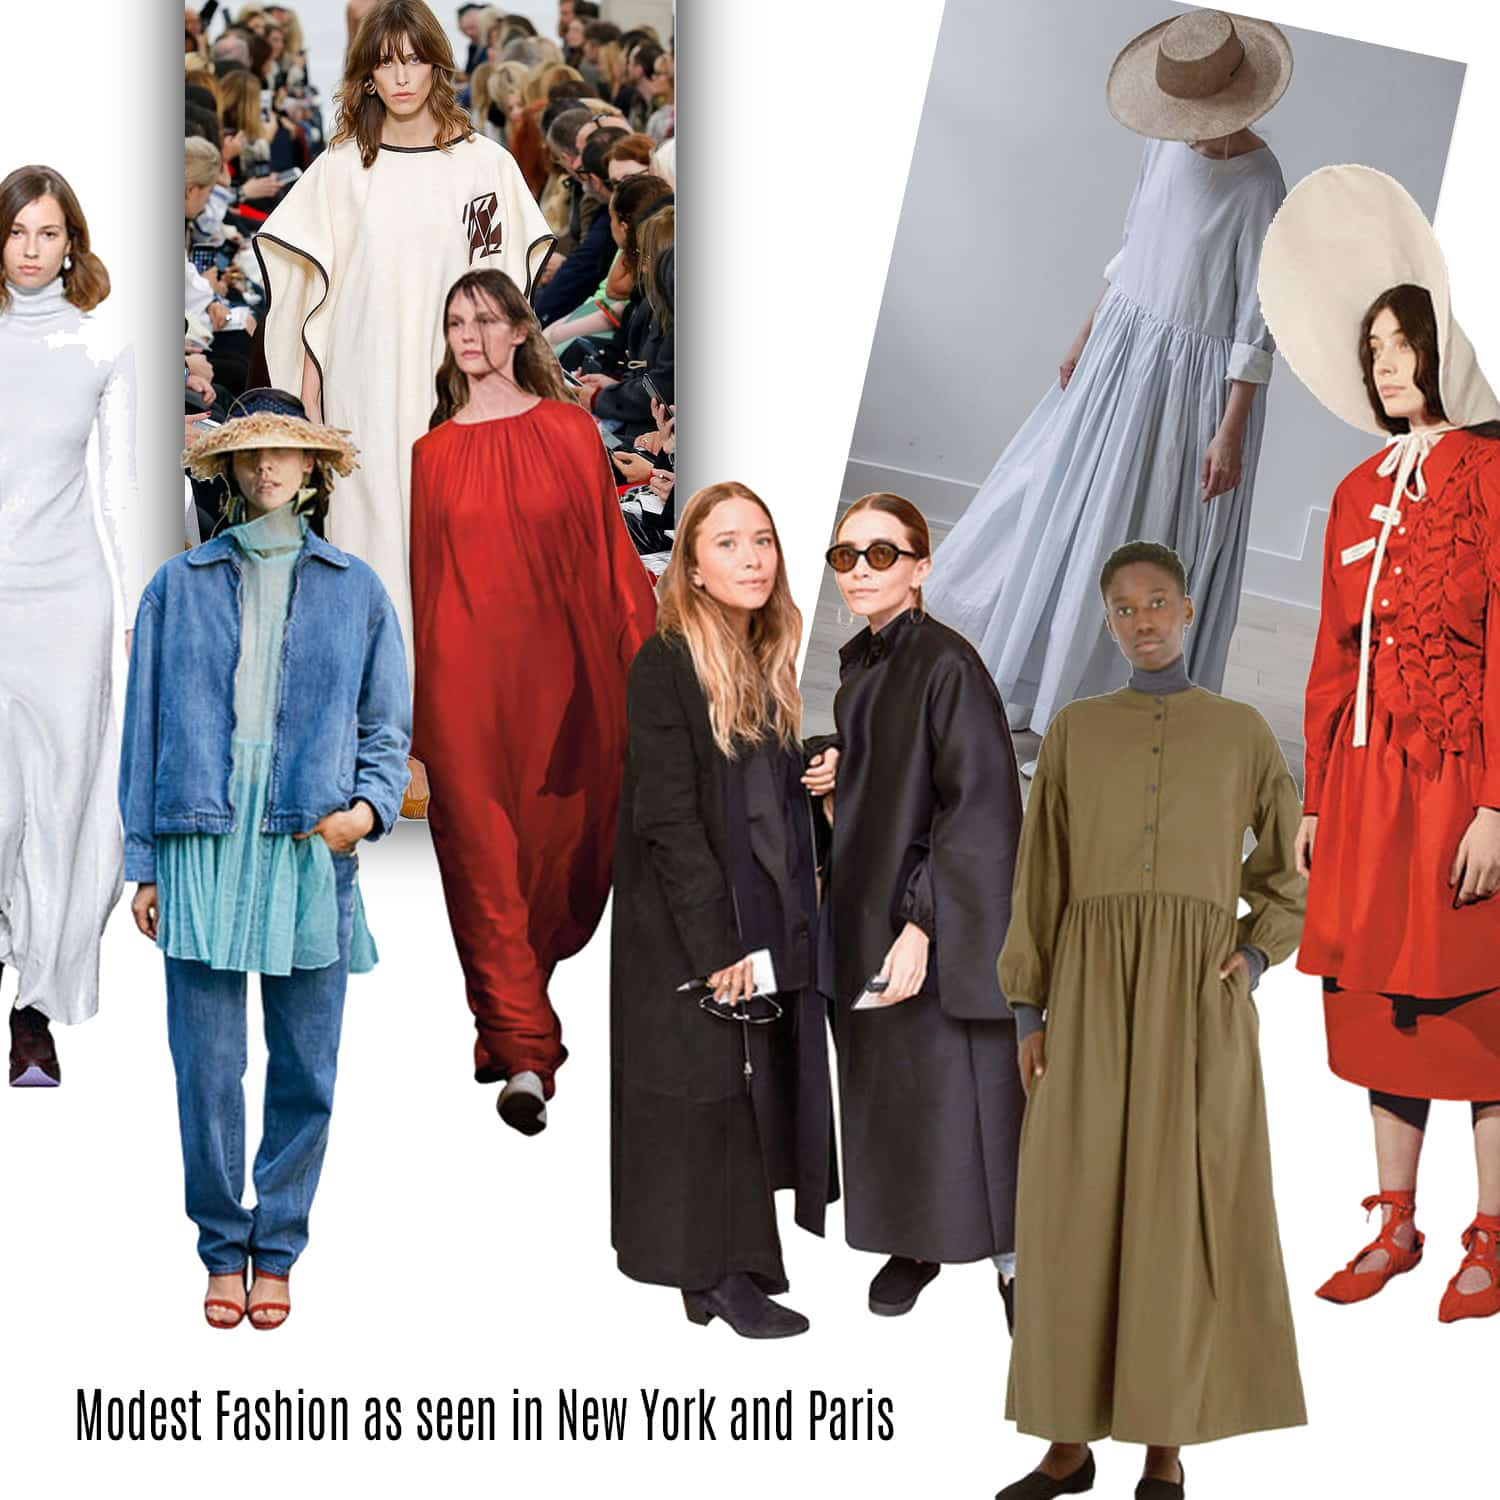 Modest Fashion as seen in New York and Paris